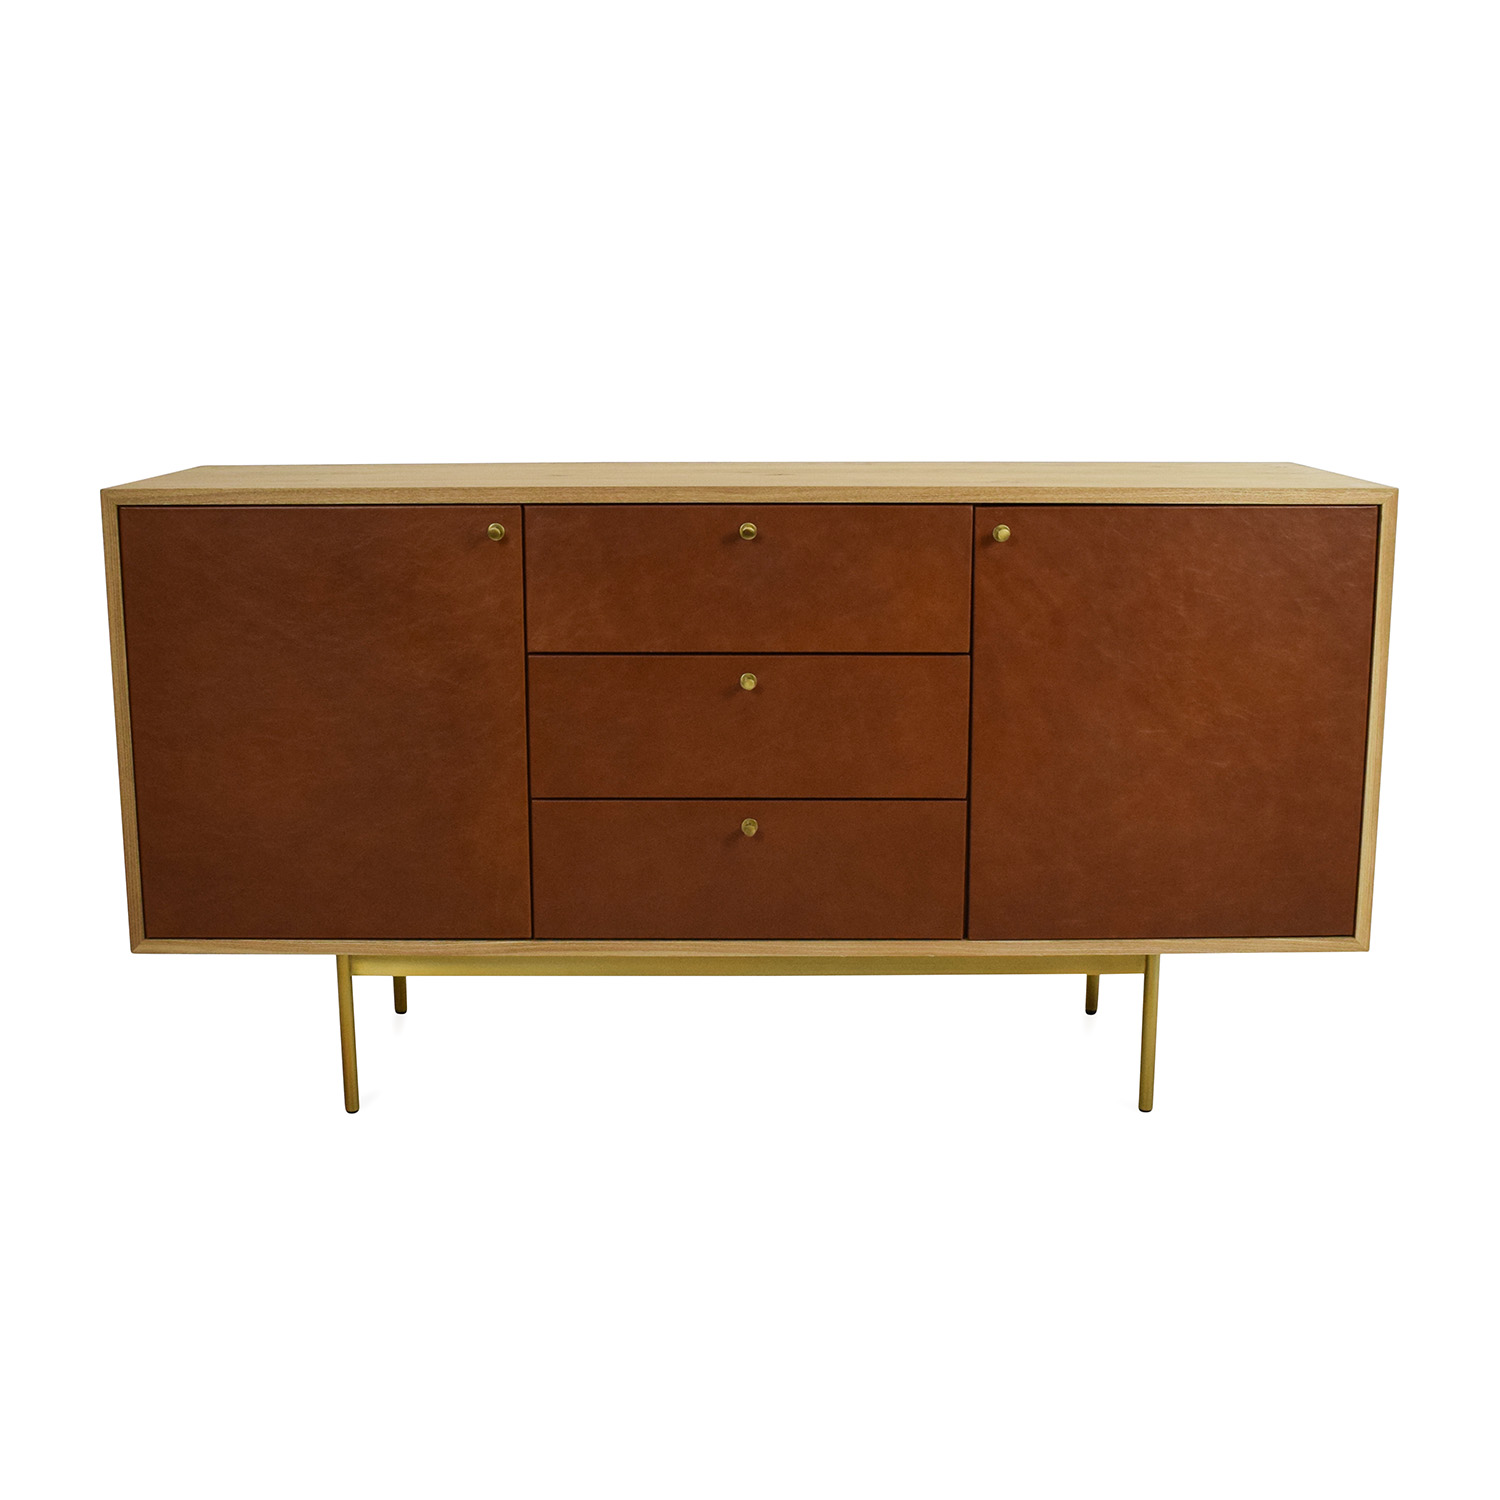 West Elm West Elm Michael Robbins Leather Front Buffet Cabinets & Sideboards